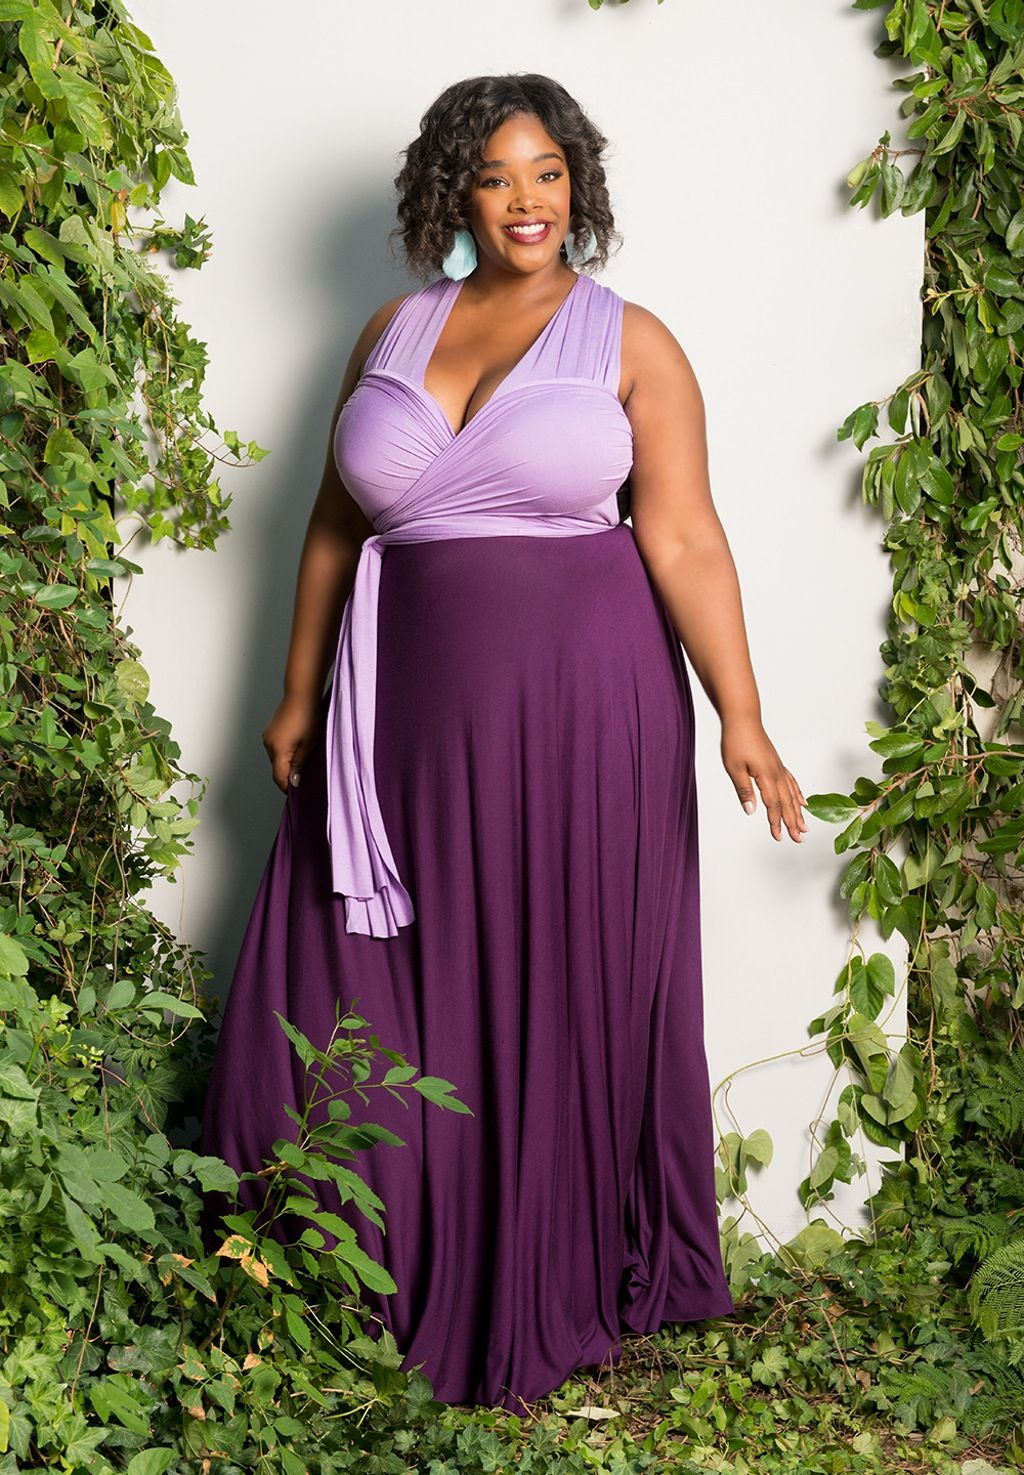 Eternity Convertible Duo Maxi Dress All Dressed Up Pinterest